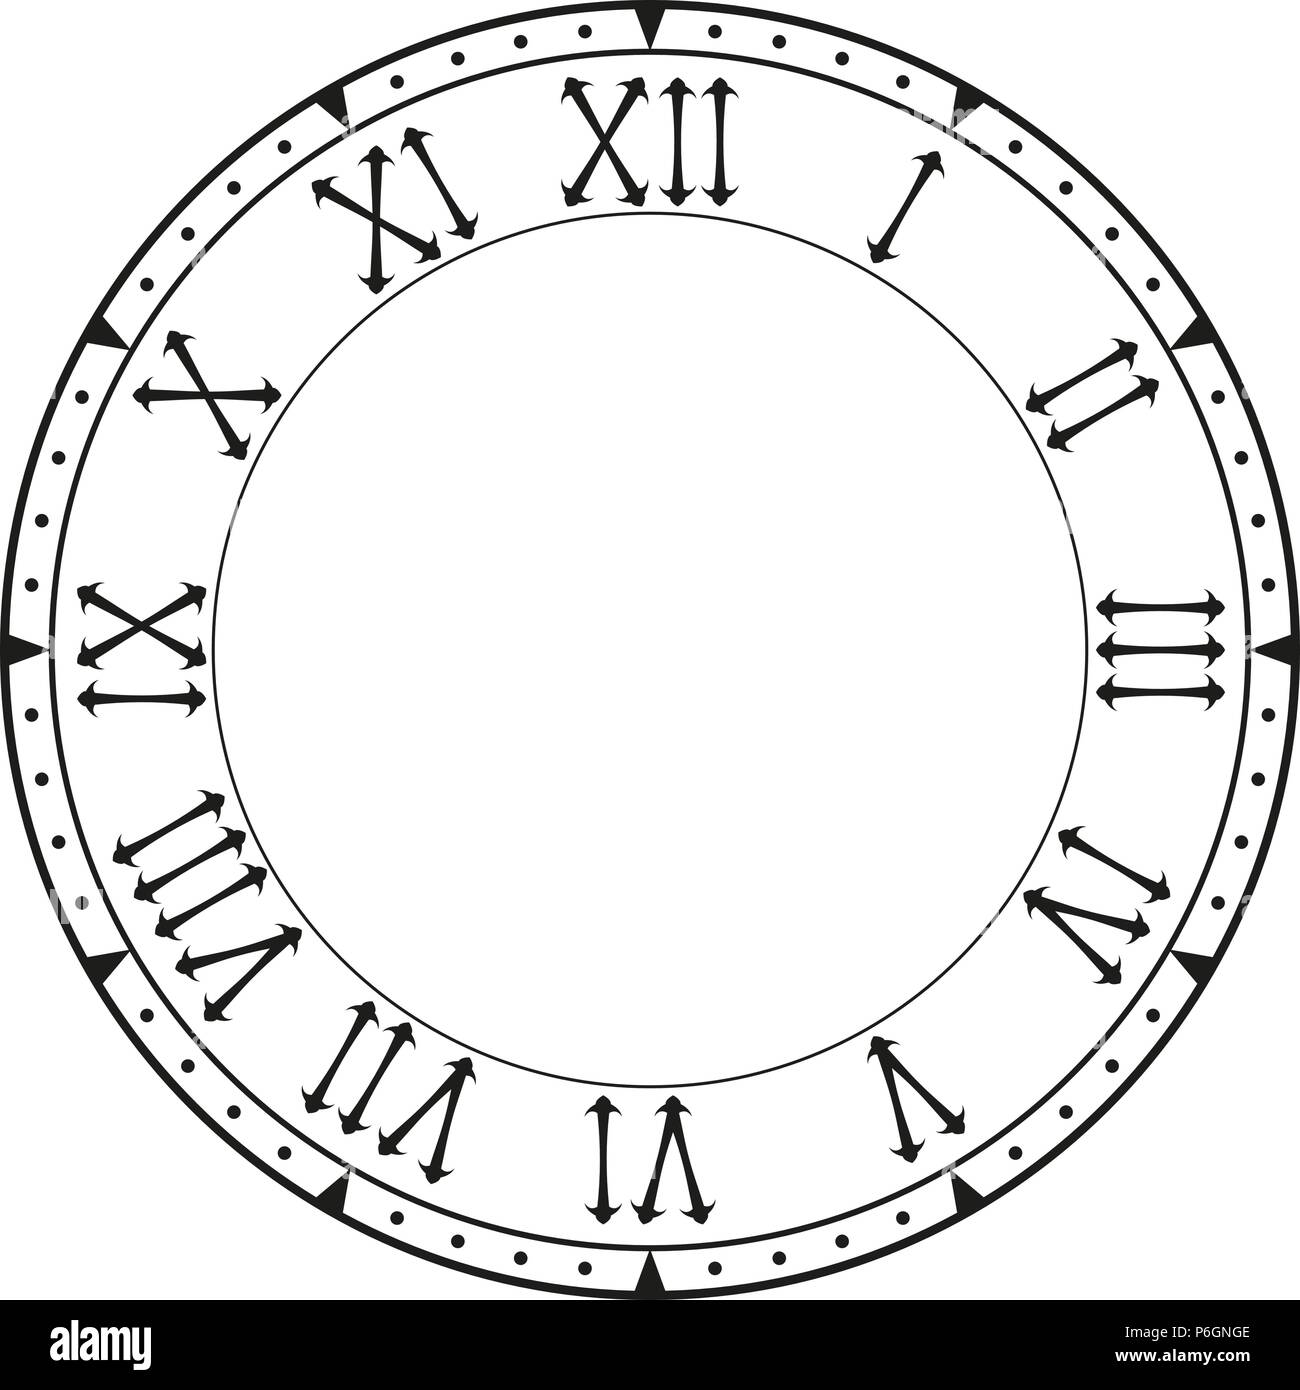 Clock face  Black blank clock with roman numerals Stock Vector Art